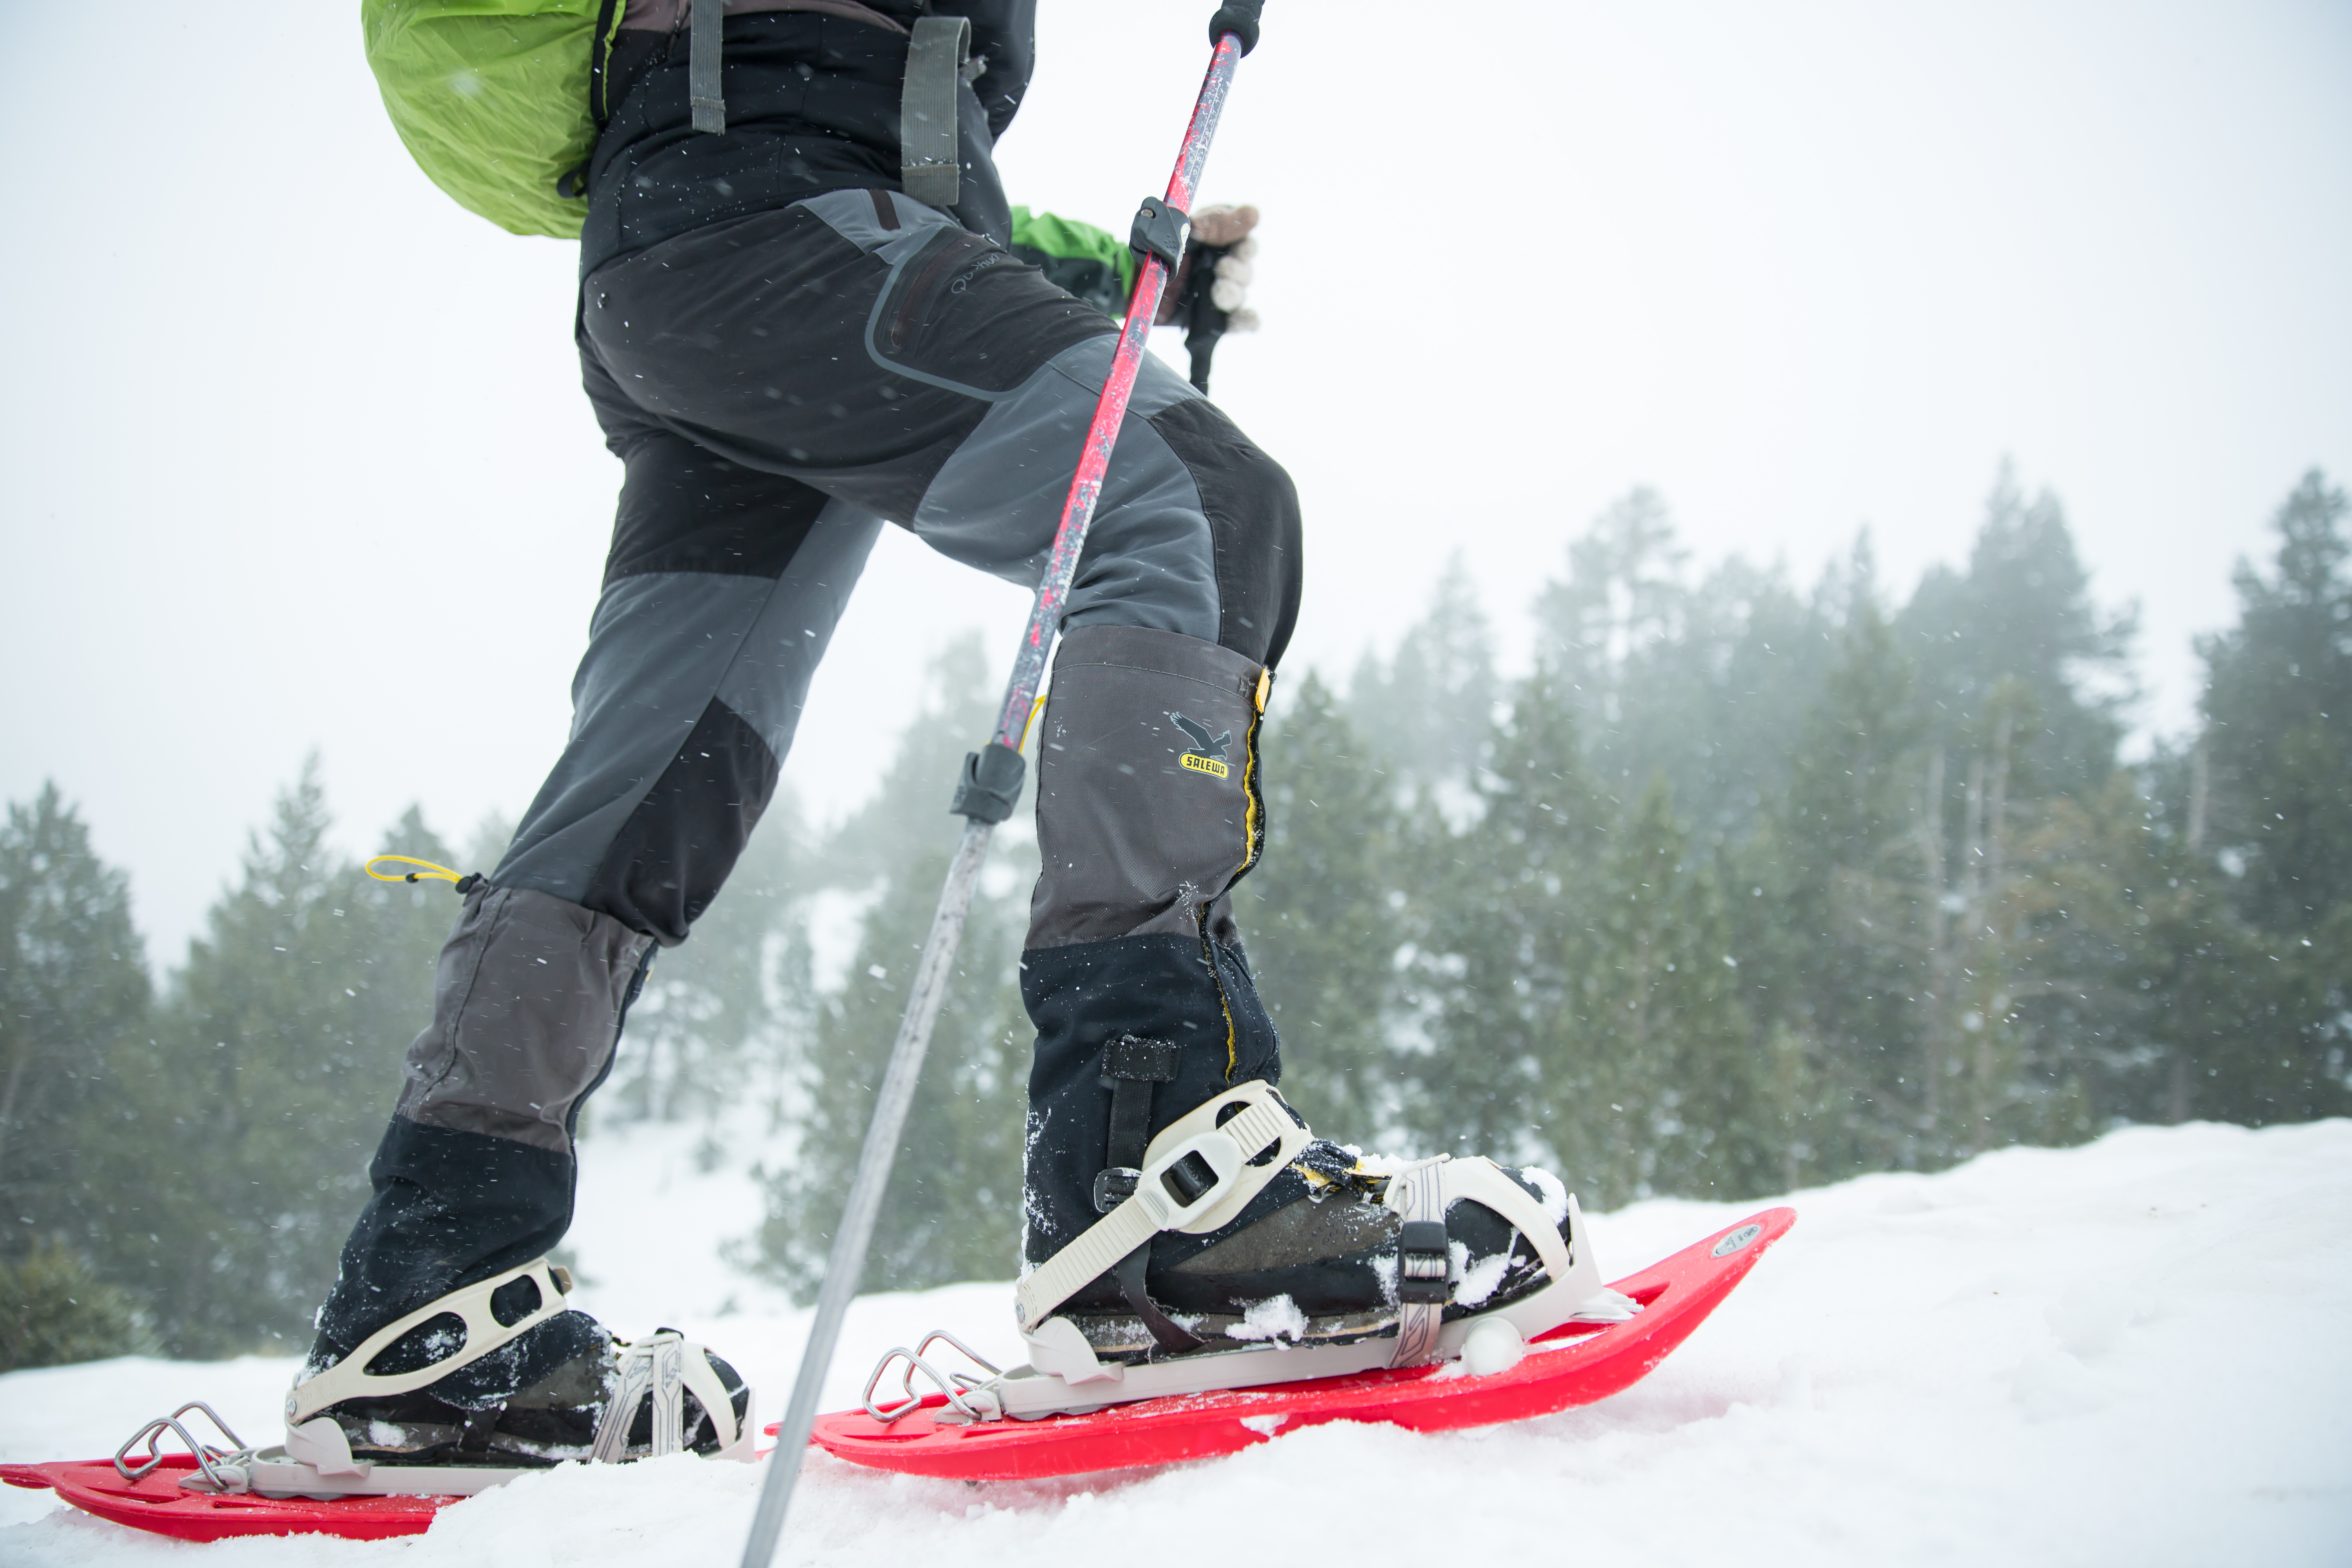 Walking on snowshoes does not require much skill.